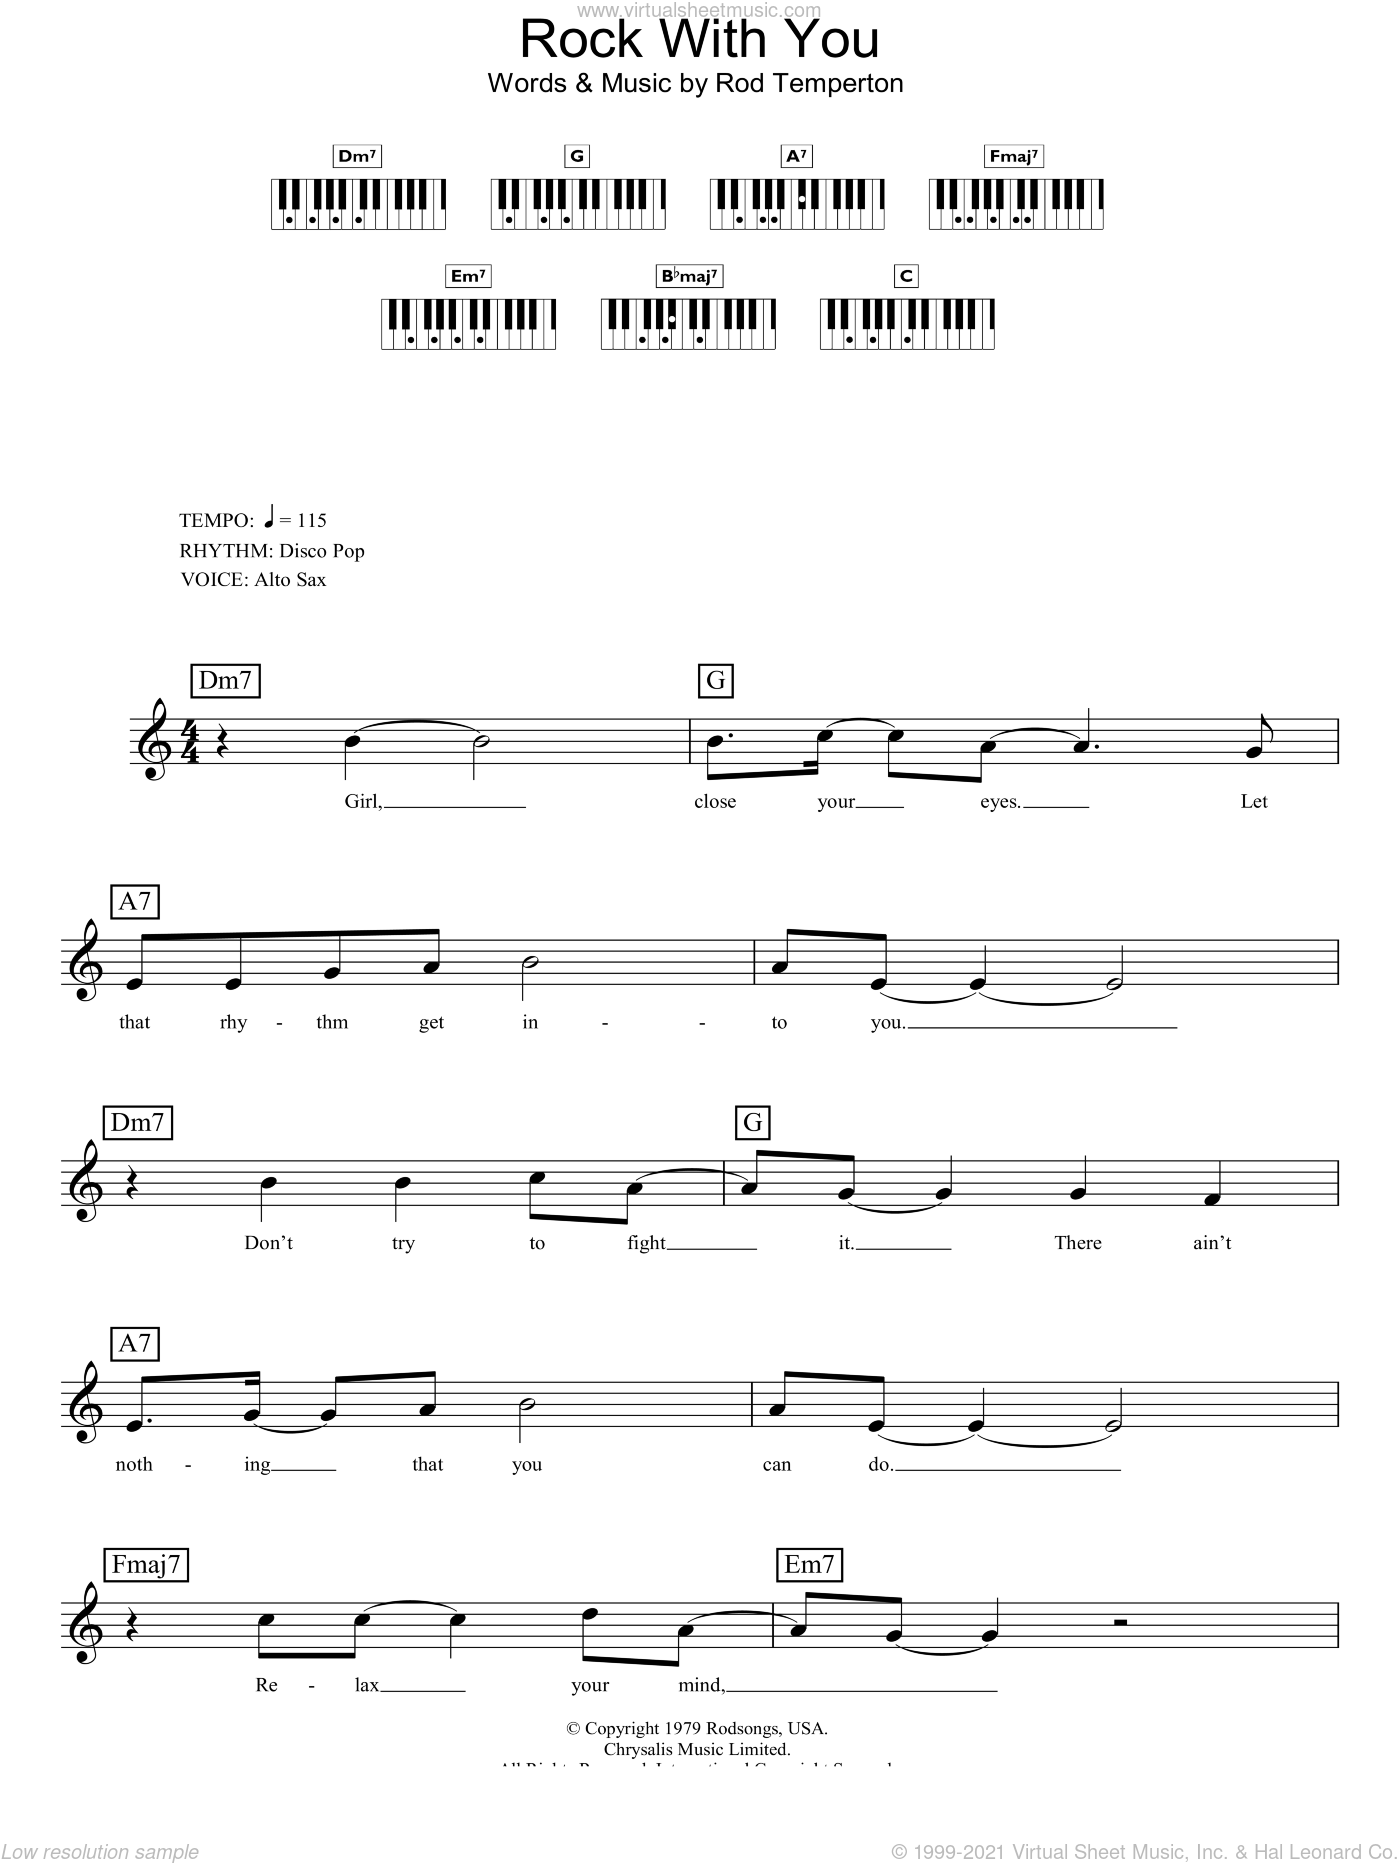 Rock With You sheet music for piano solo (chords, lyrics, melody) by Rod Temperton